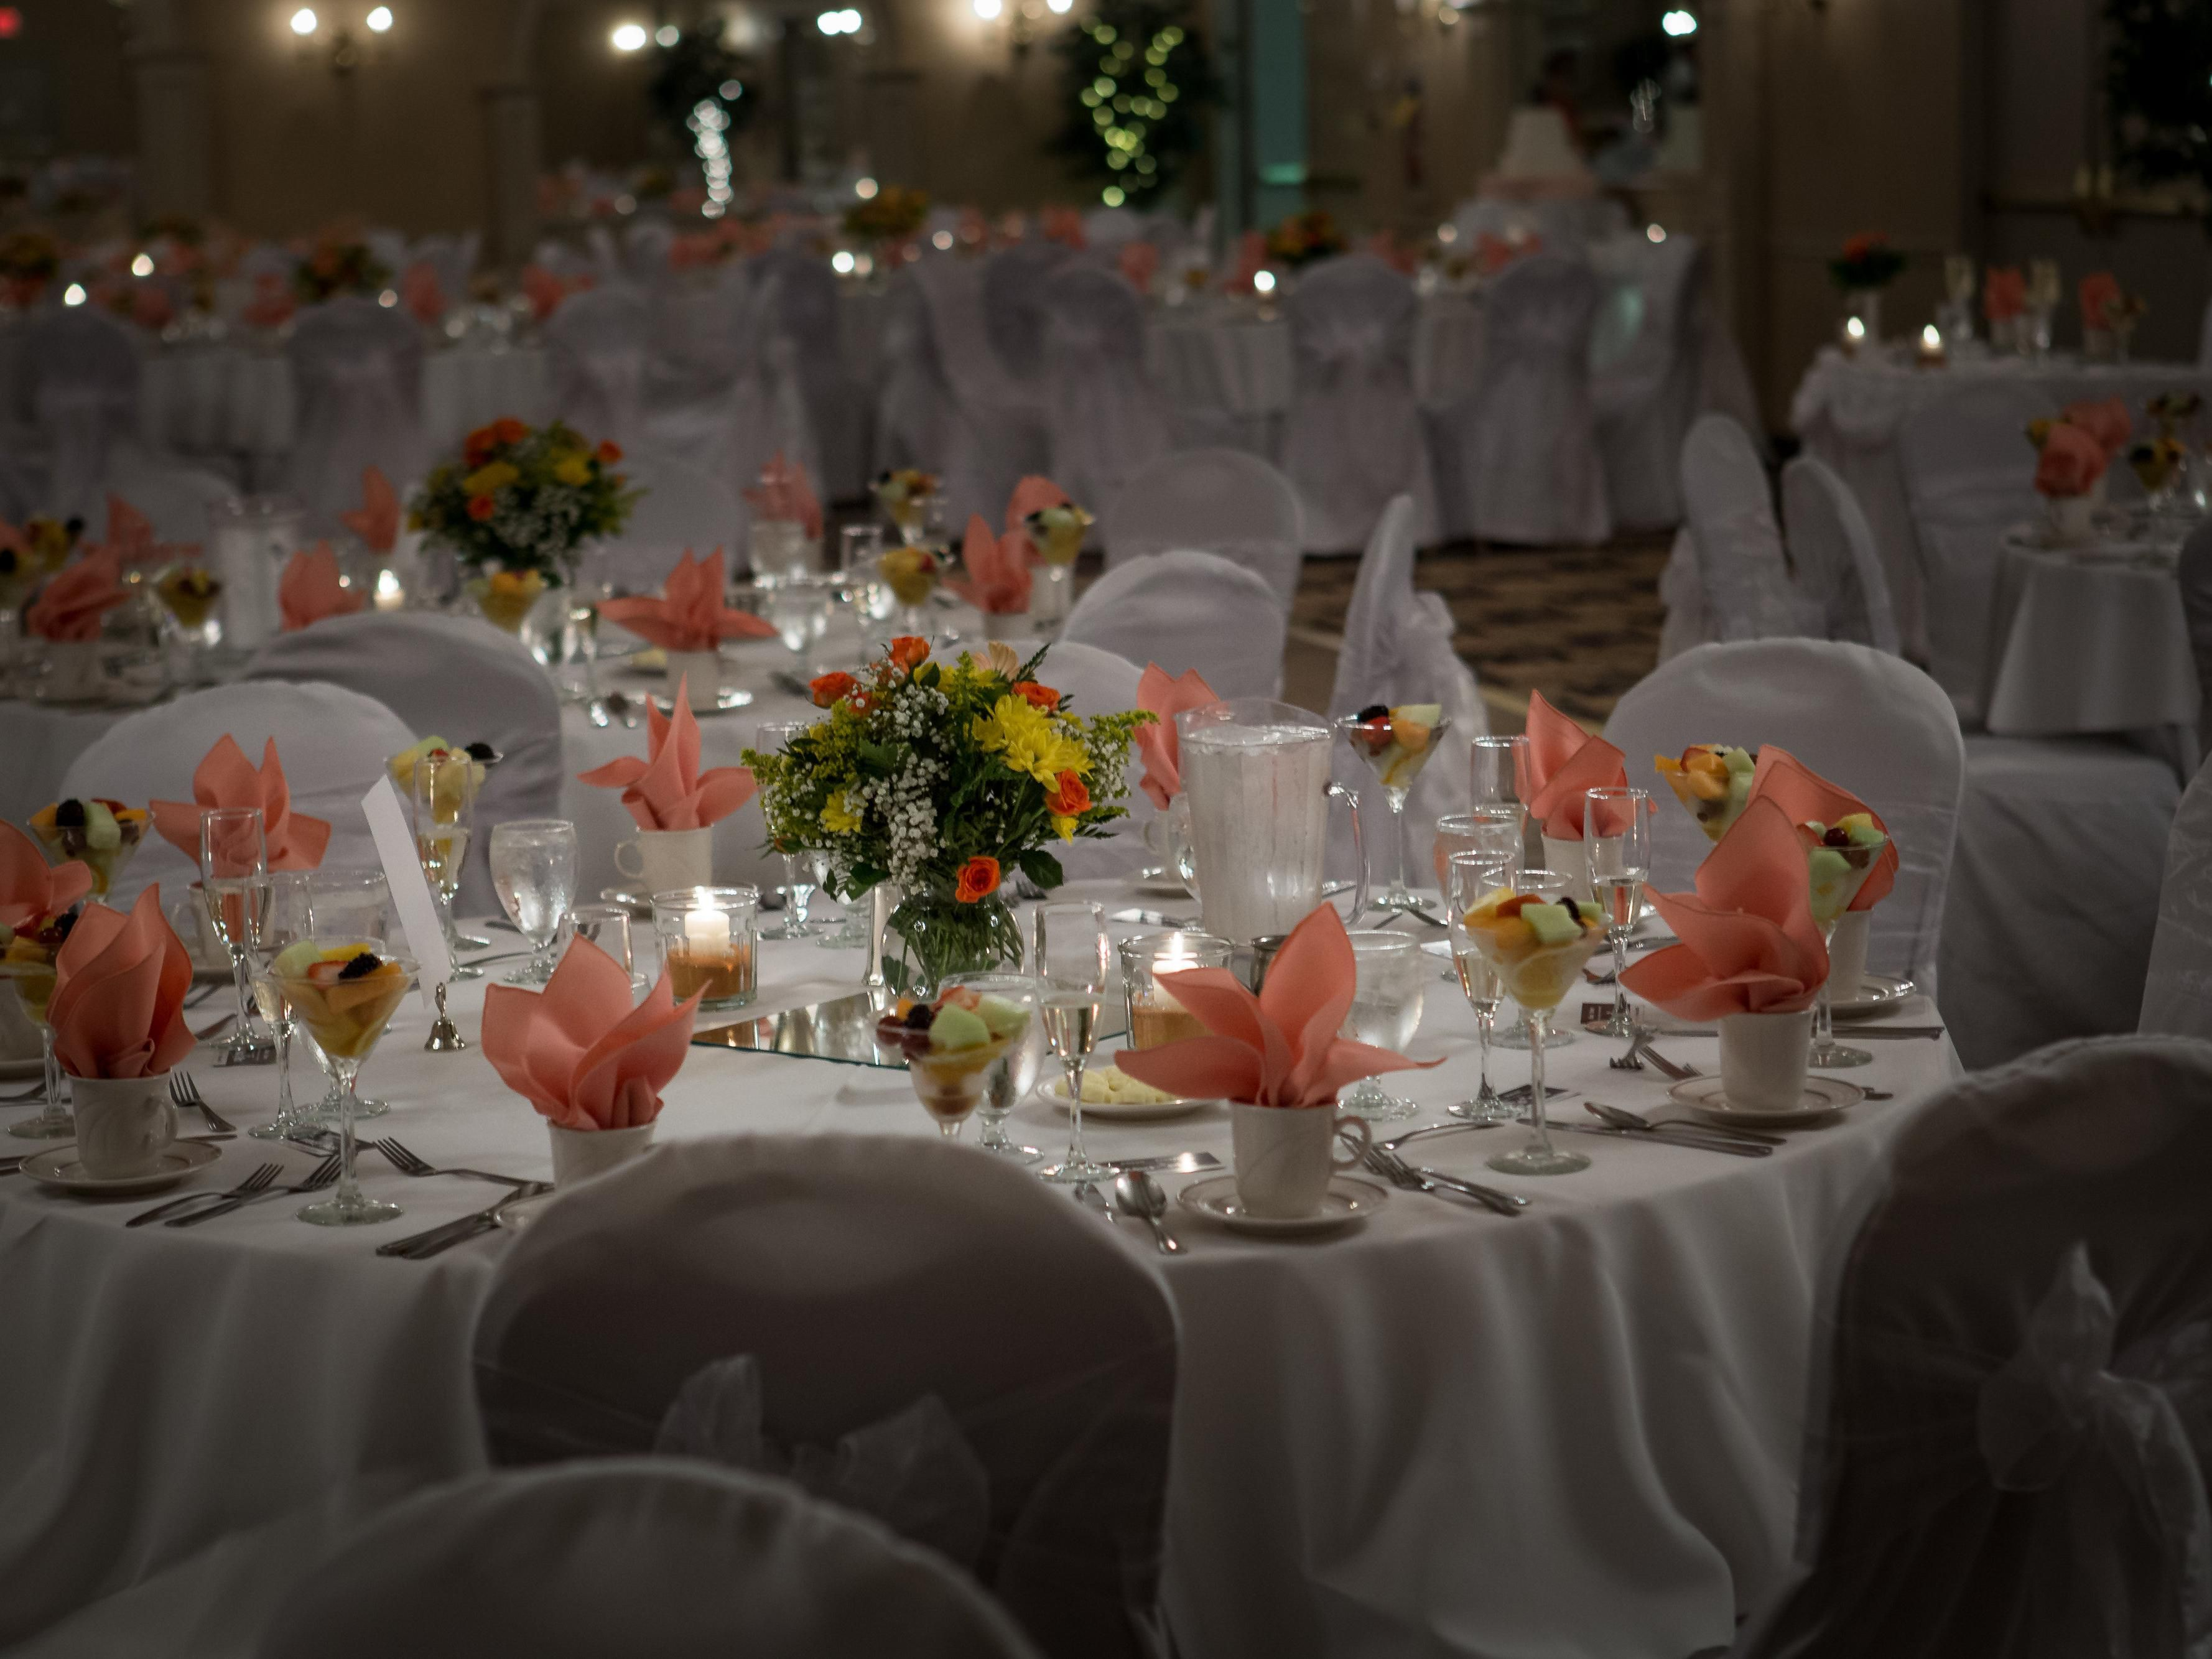 Weddings at the Holiday Inn Swedesboro